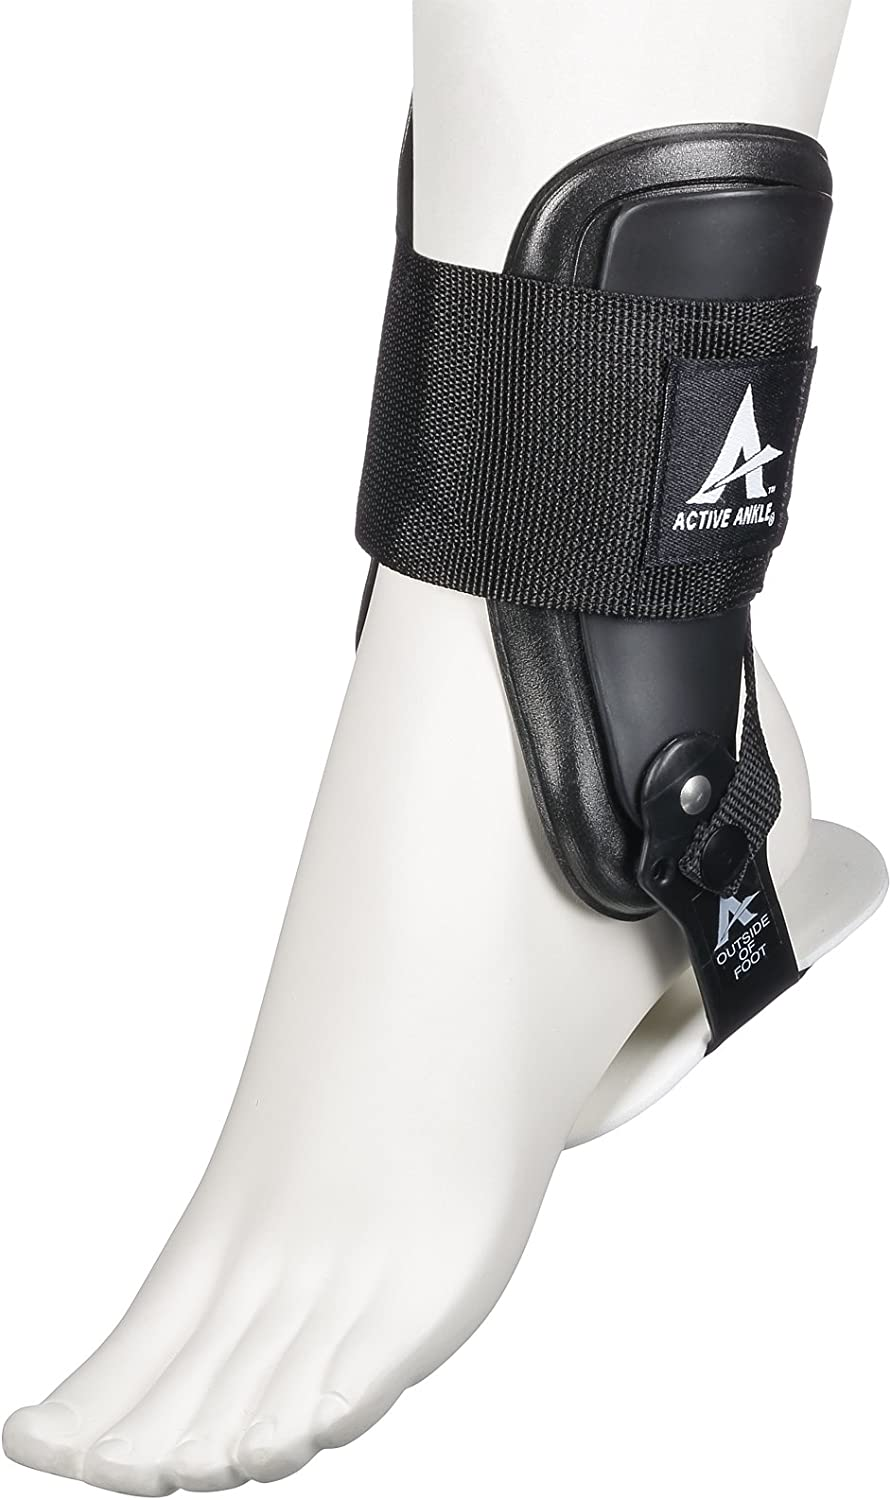 Active Ankle T2 Rigid Ankle Brace for Injured Ankle Predection & Sprain Support, Cheerleading, Football, Volleyball Ankle Braces, Volleyball Gifts, Wear Over Socks in Any Sport, Black